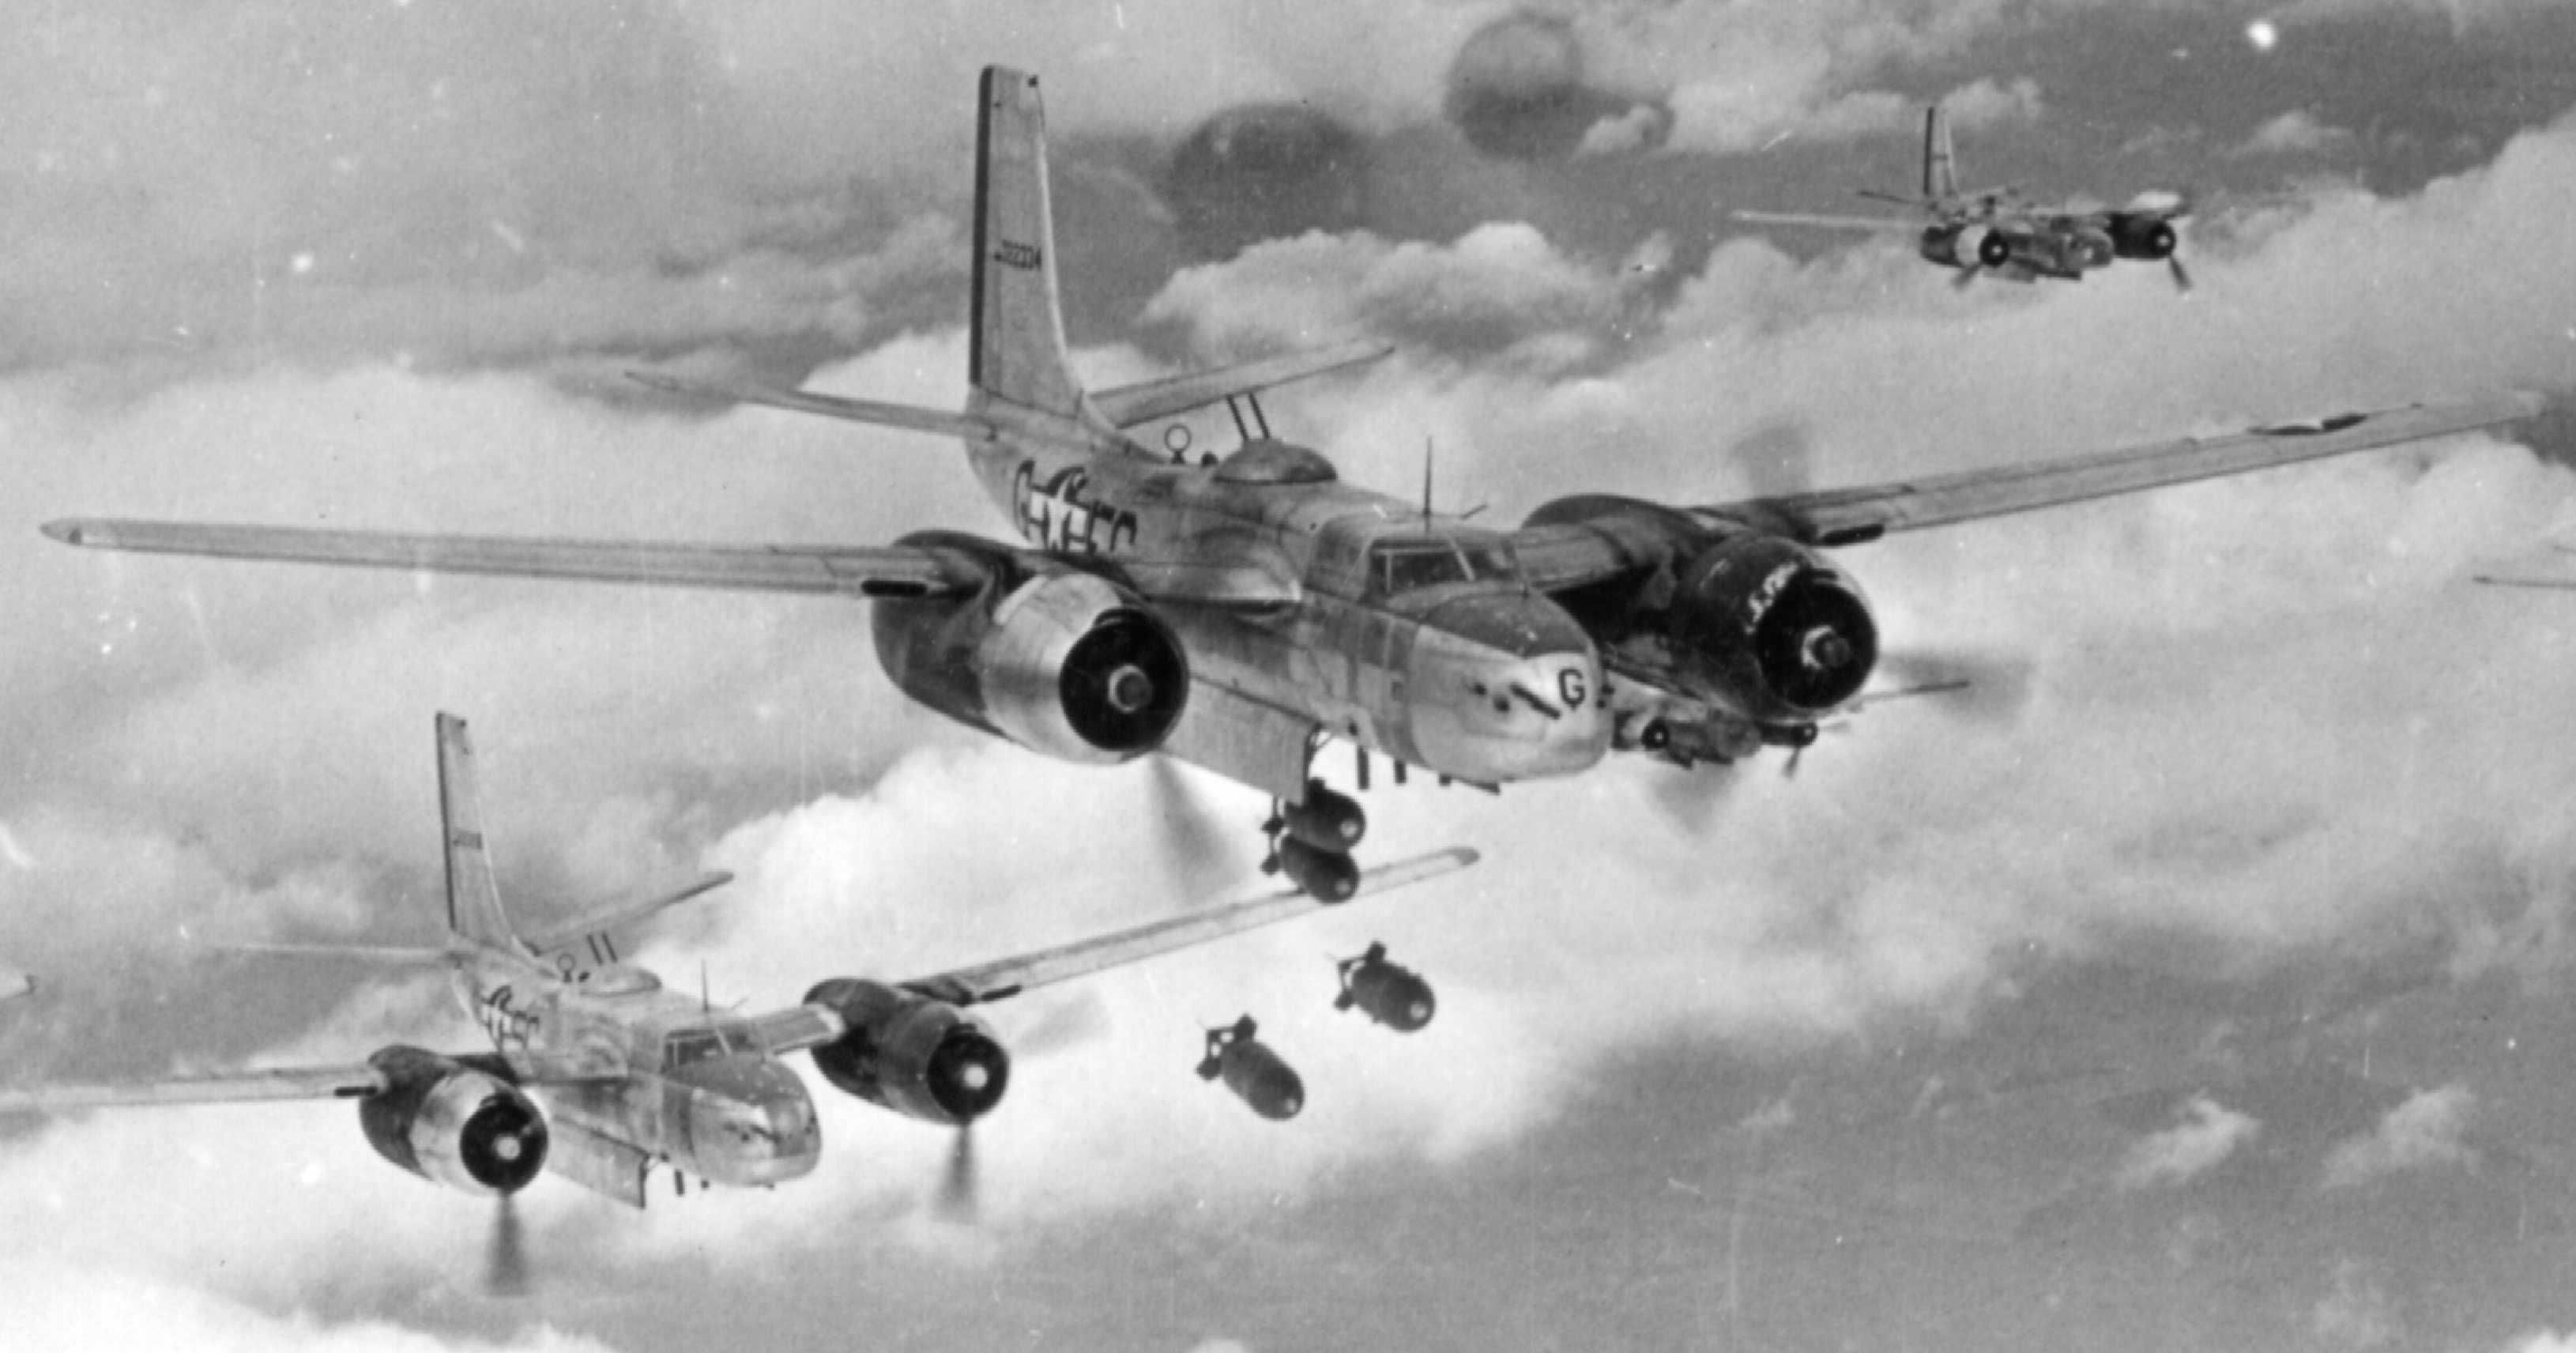 US 416th Bombardment Group Douglas A-26 bombers begin bomb drop over German positions Dec 1944-Jan 1945. The A-26 served through the Korean War and, in highly modified form, remained in limited service until 1969.